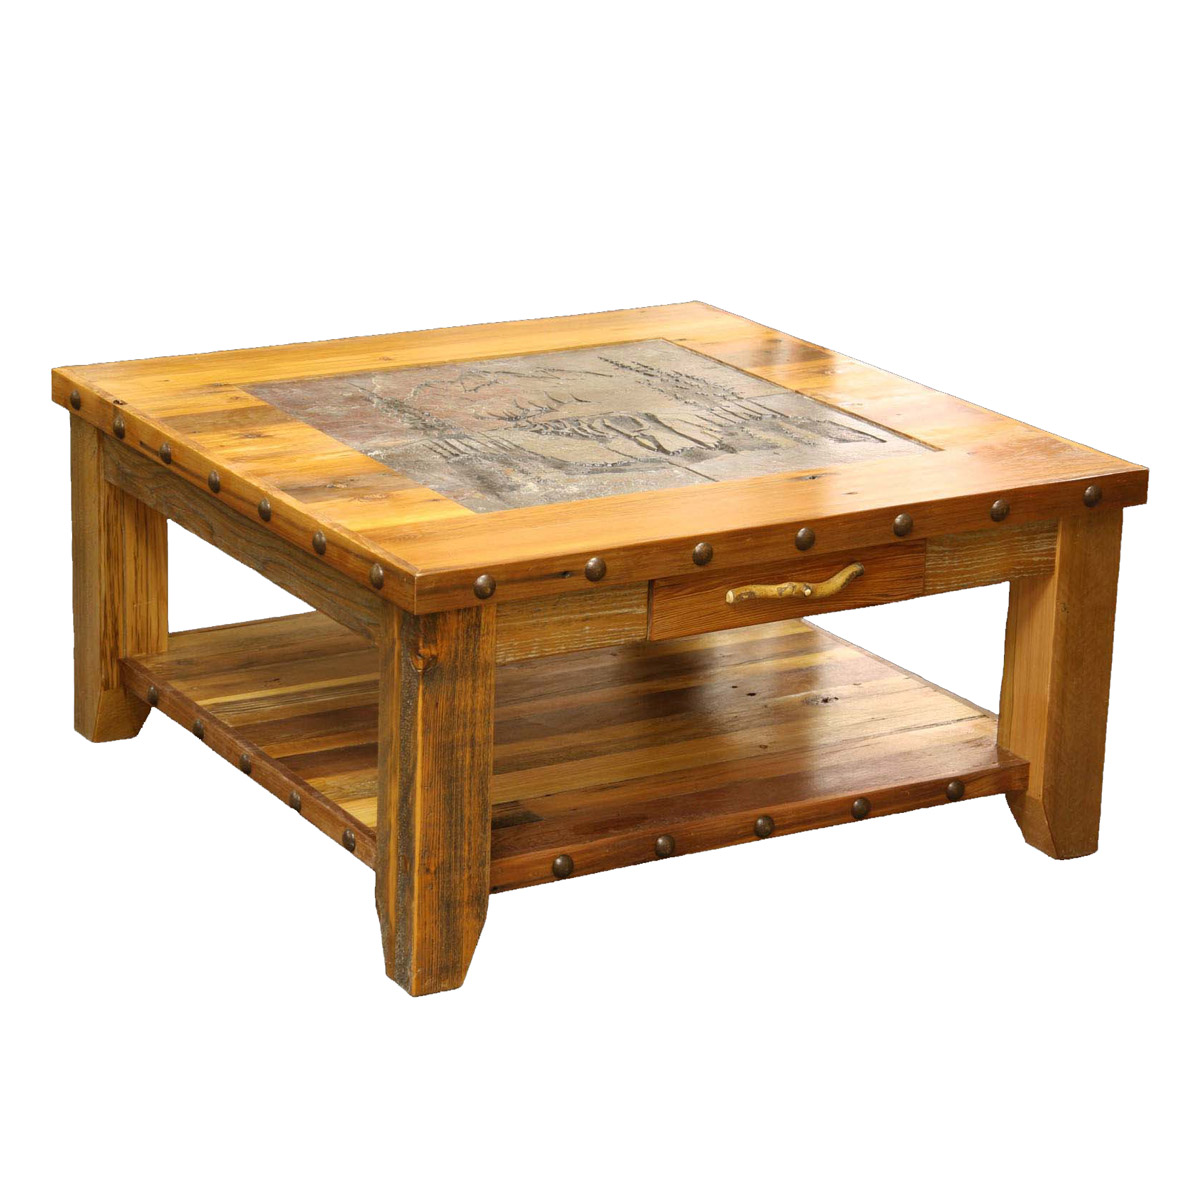 barnwood elk scene tile top coffee table with nailheads accent bistro set small glass bedside west elm chairs buffet side inch wall clock square metal end cooler stable target